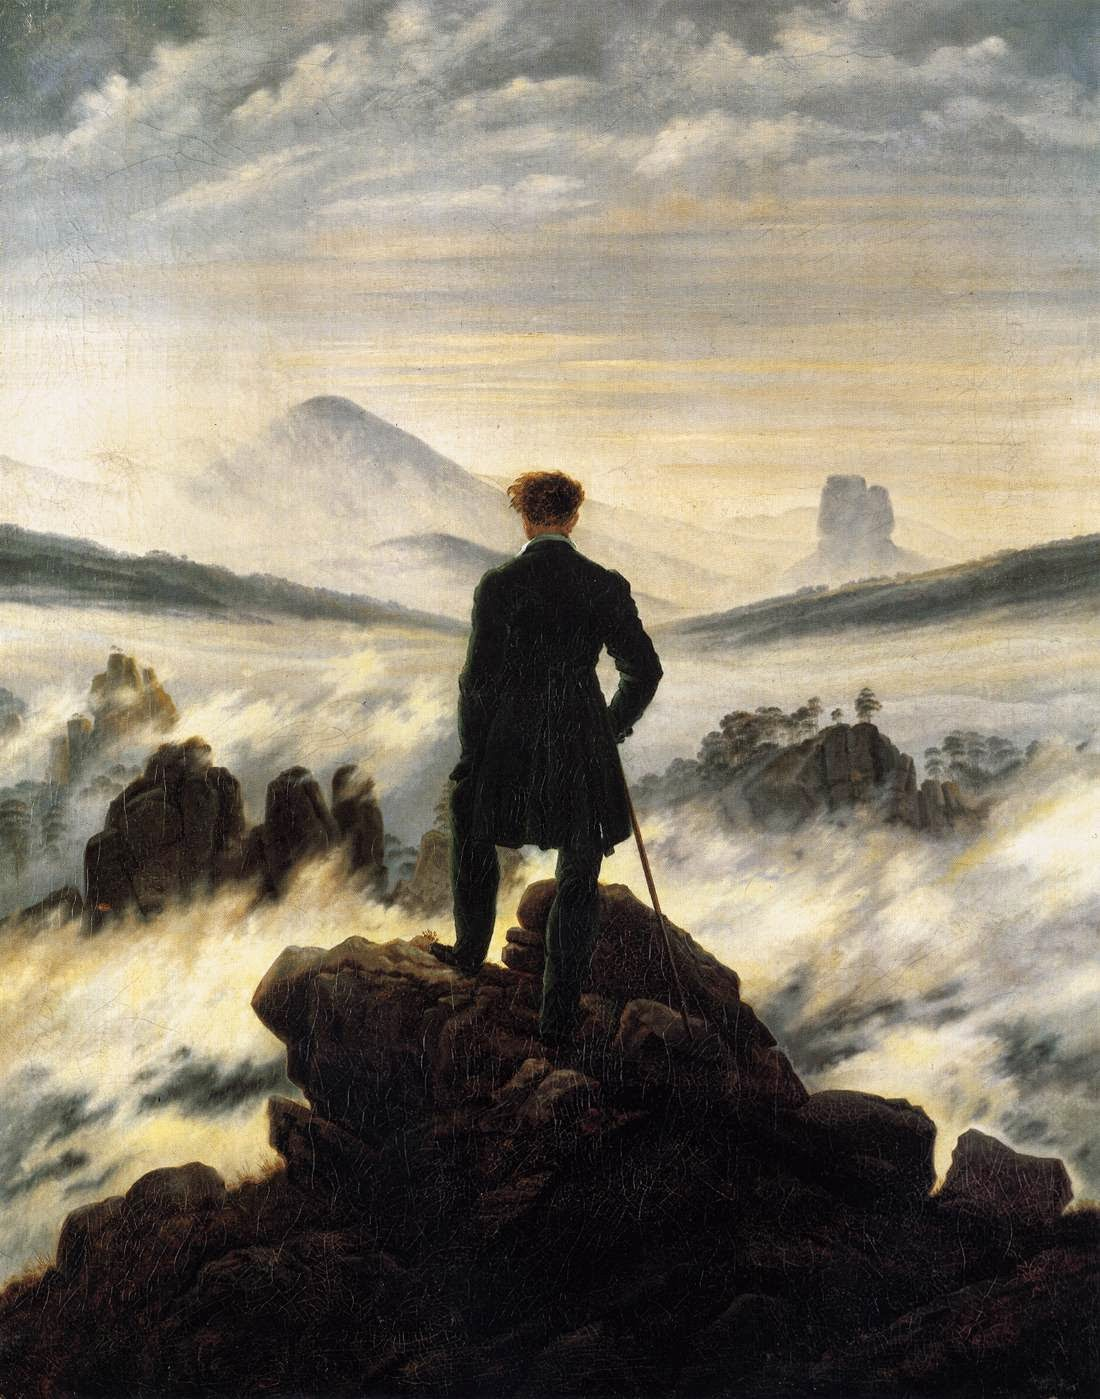 https://3.bp.blogspot.com/-dB-c3zluHKs/VTfltvx8JGI/AAAAAAAAAo4/sj0FSIsz0wE/s1600/21_Caspar_David_Friedrich.jpg